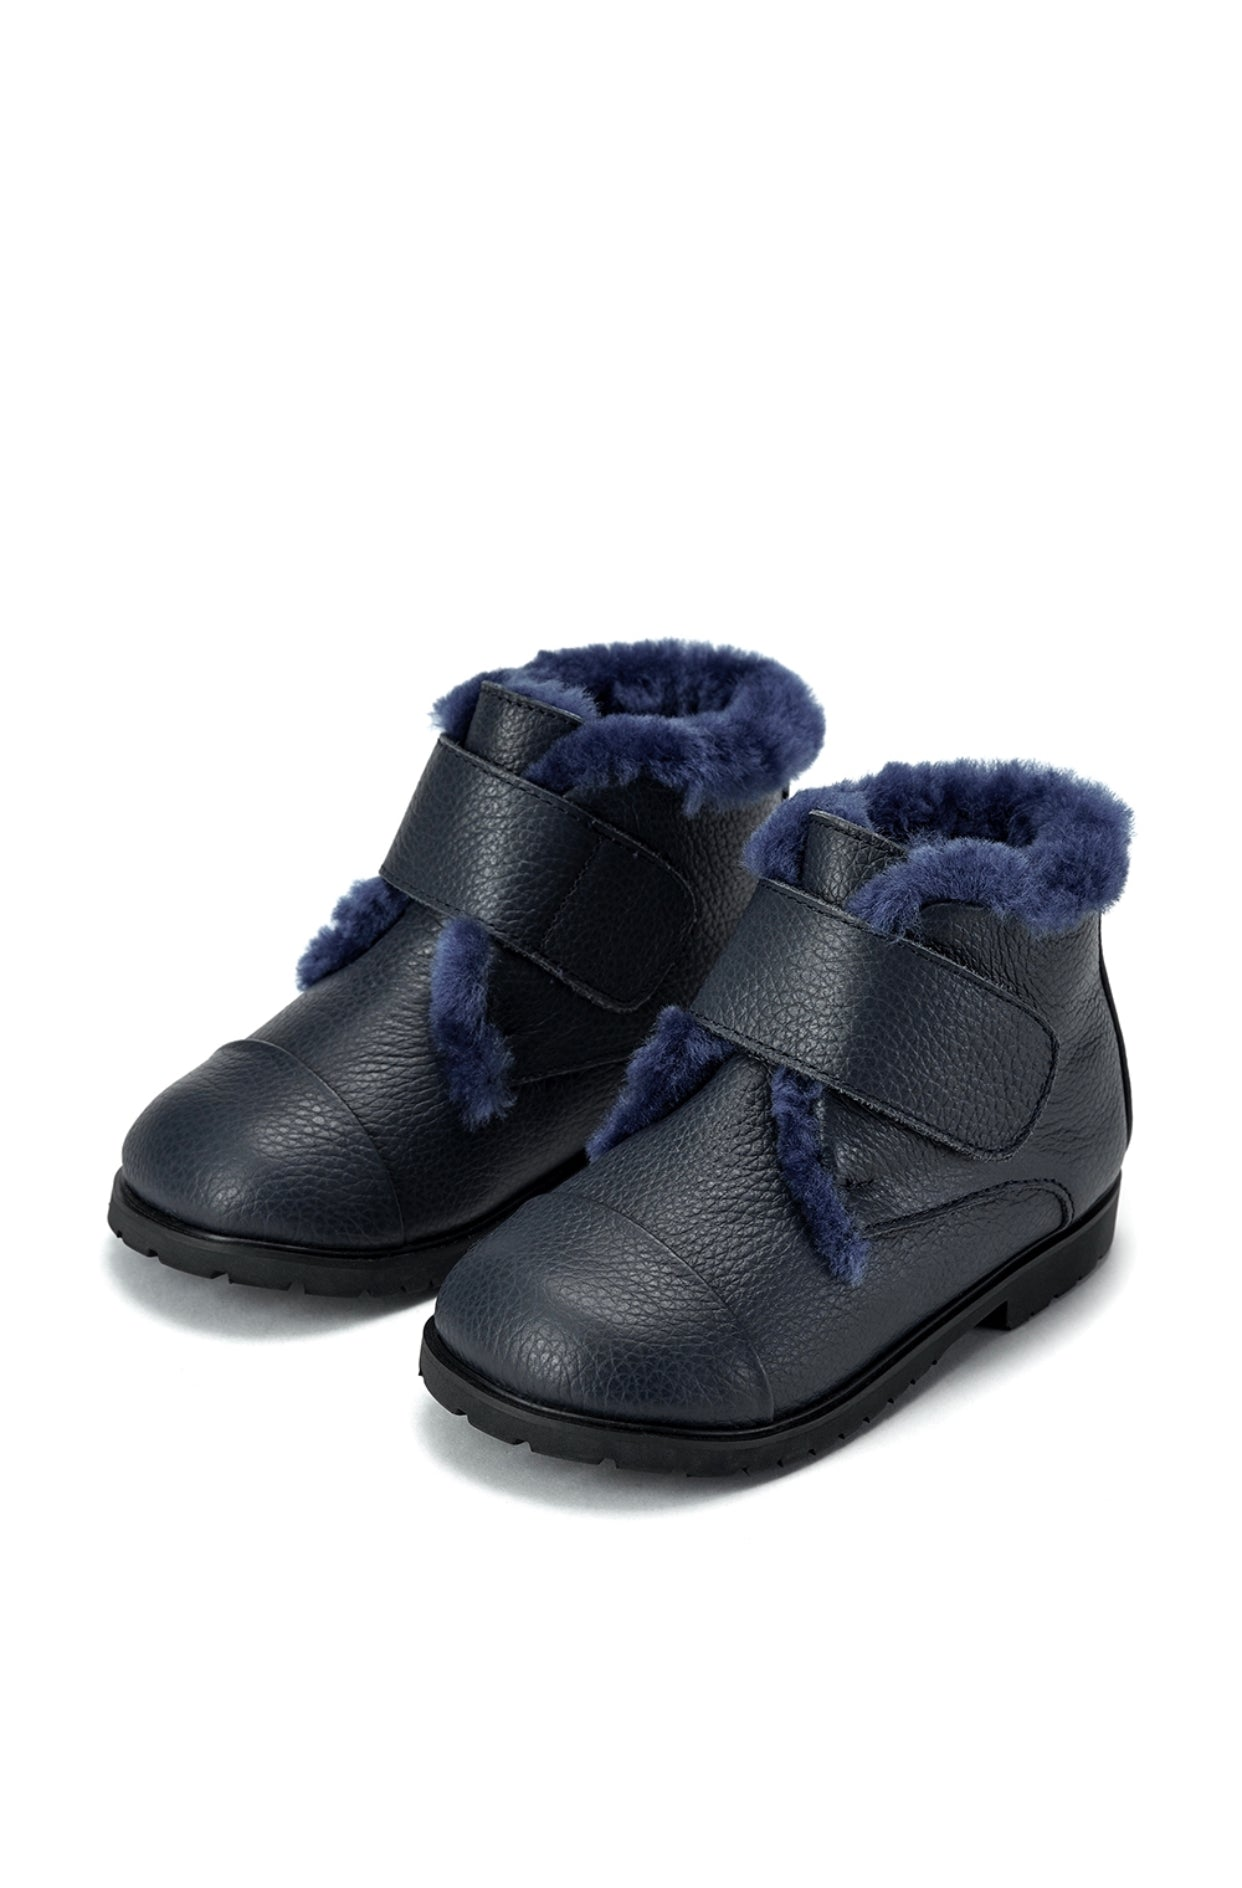 Age of Innocence Zoey Boots in Navy